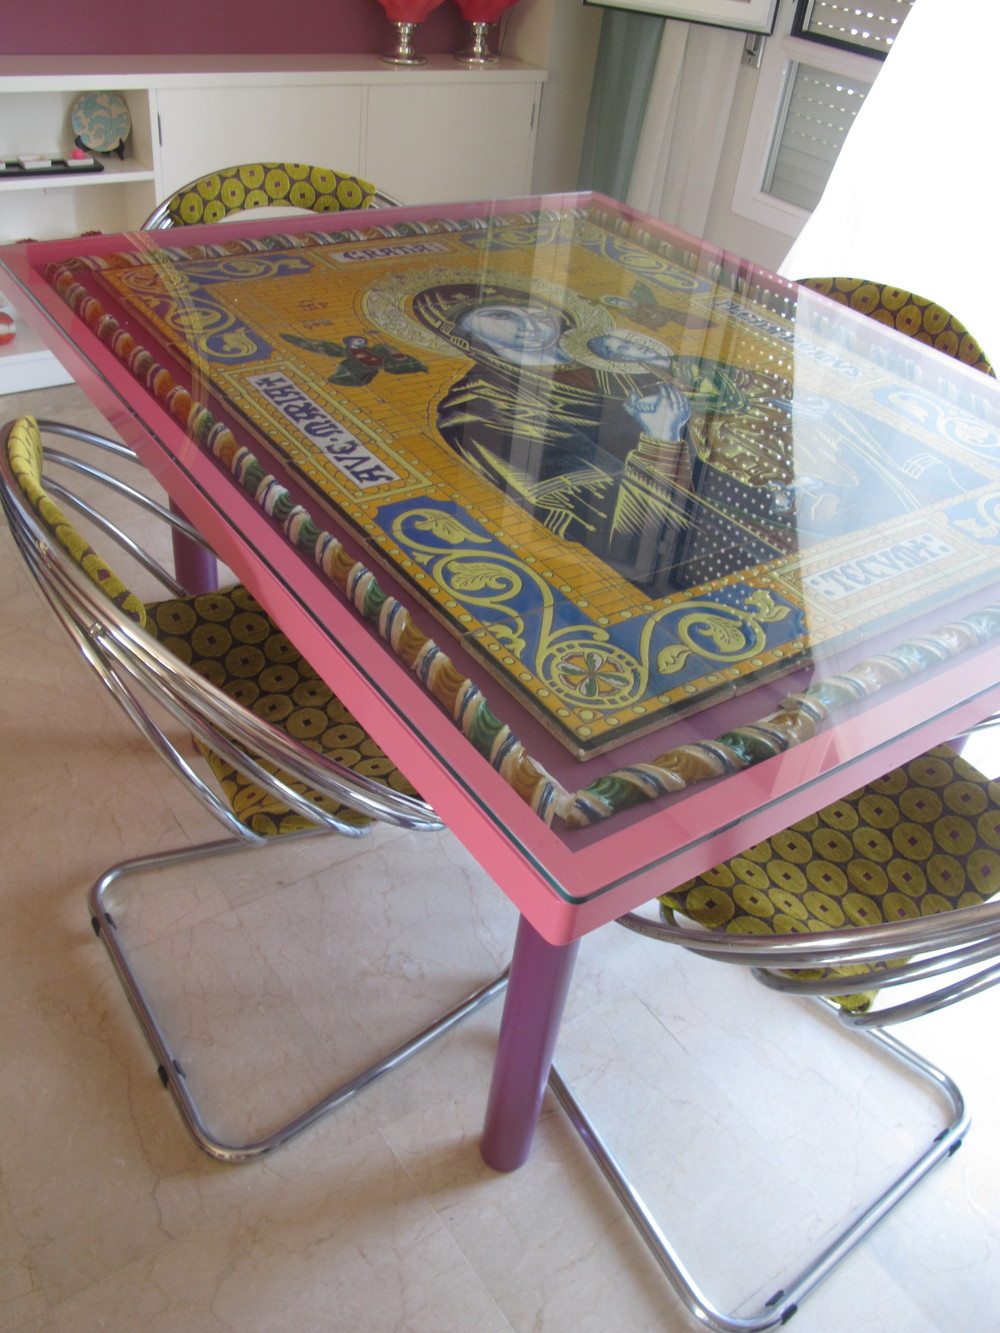 An amazing table designed by Angela using a 1940s mosaic composition